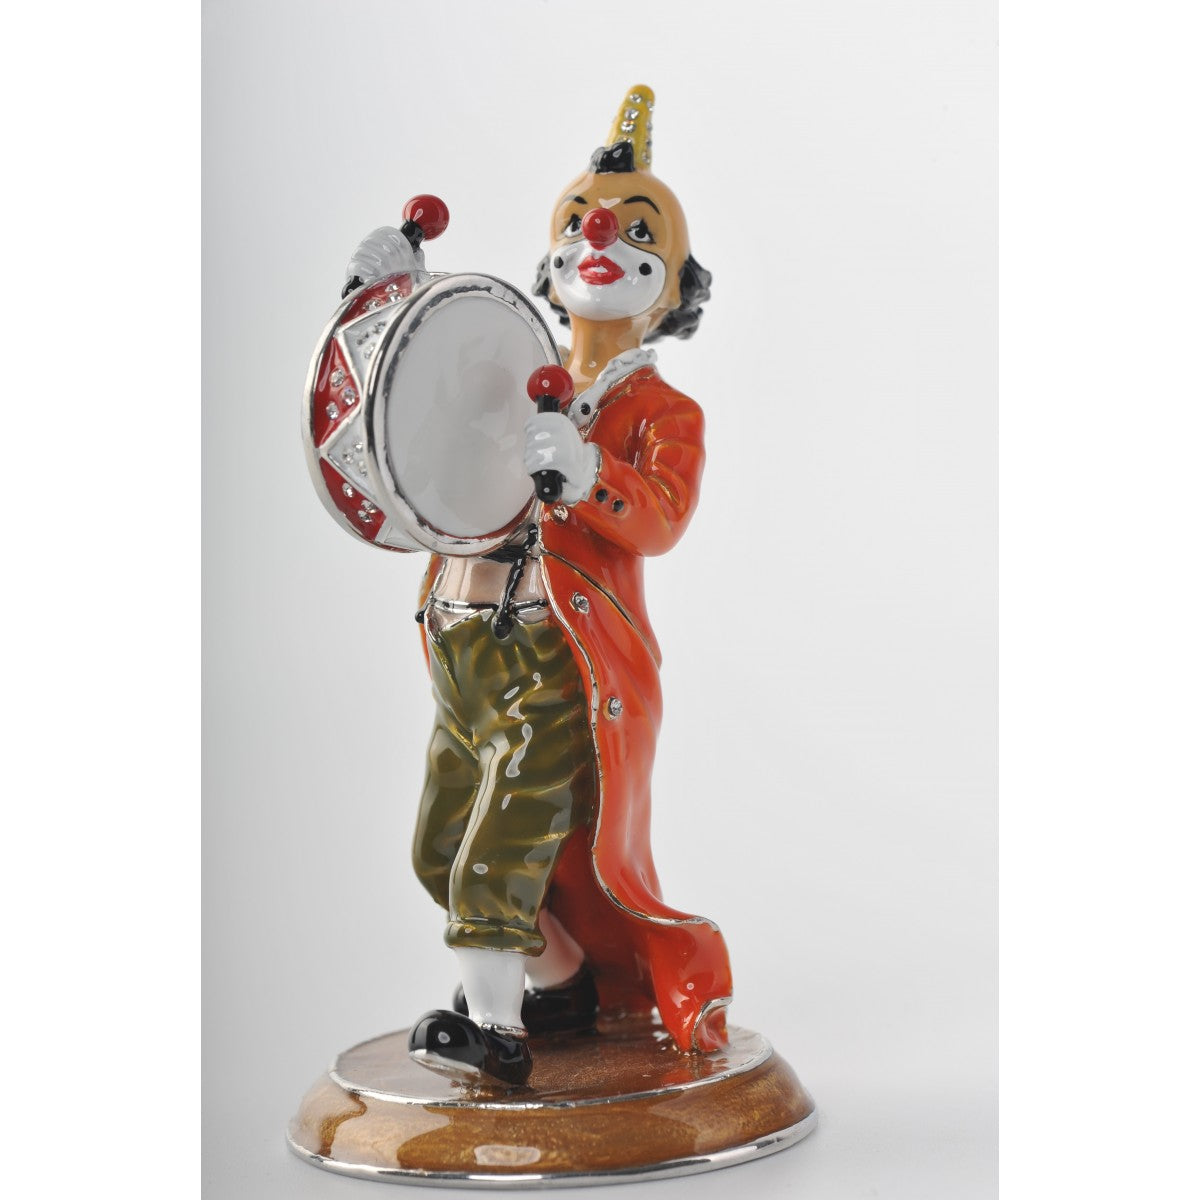 Circus Clown with drums by Keren Kopal